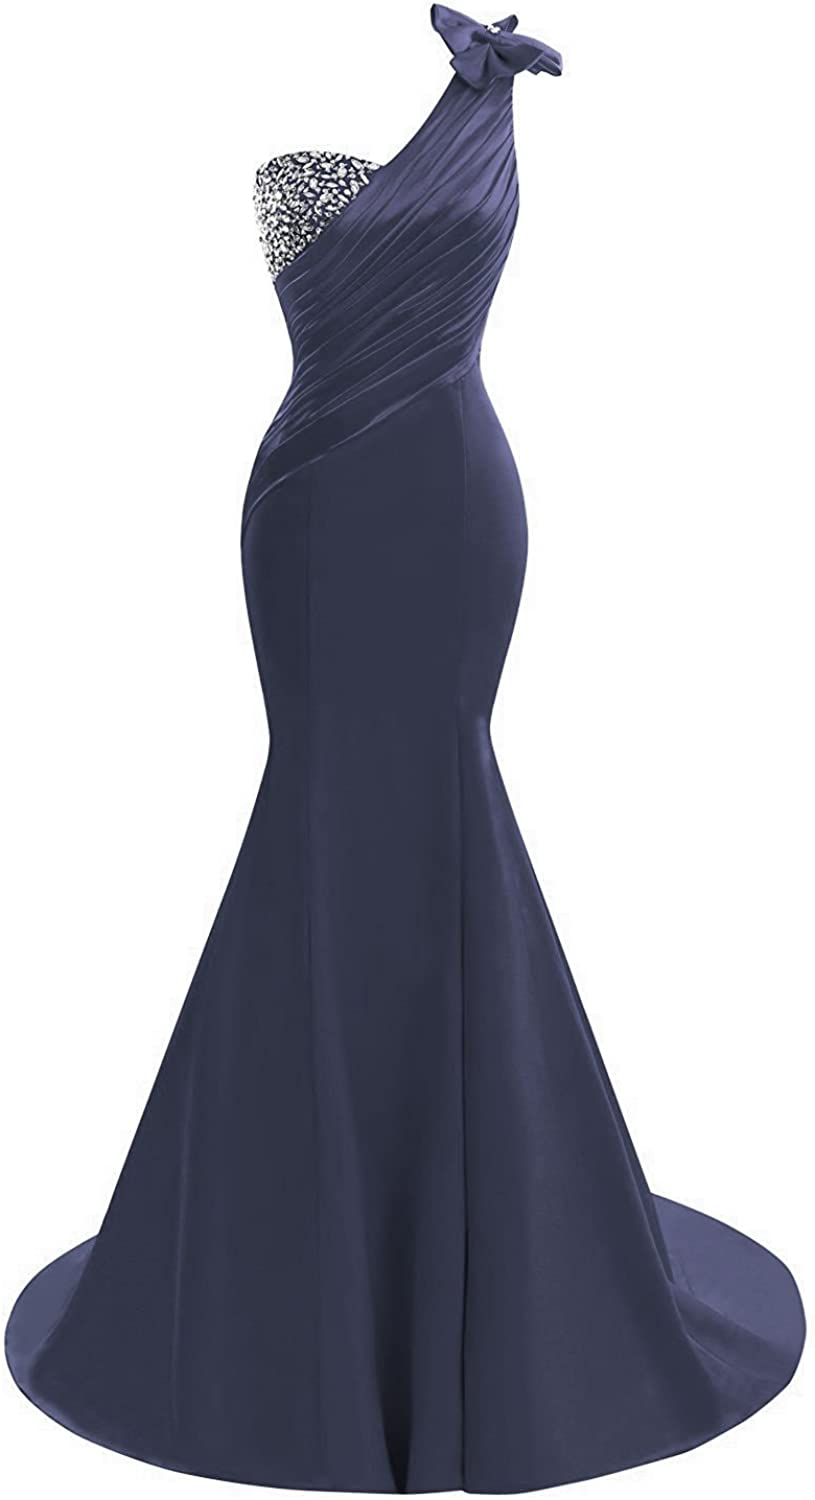 DINGZAN Vintage Mermaid Satin Prom Pageant Dress Bridesmaid Gown